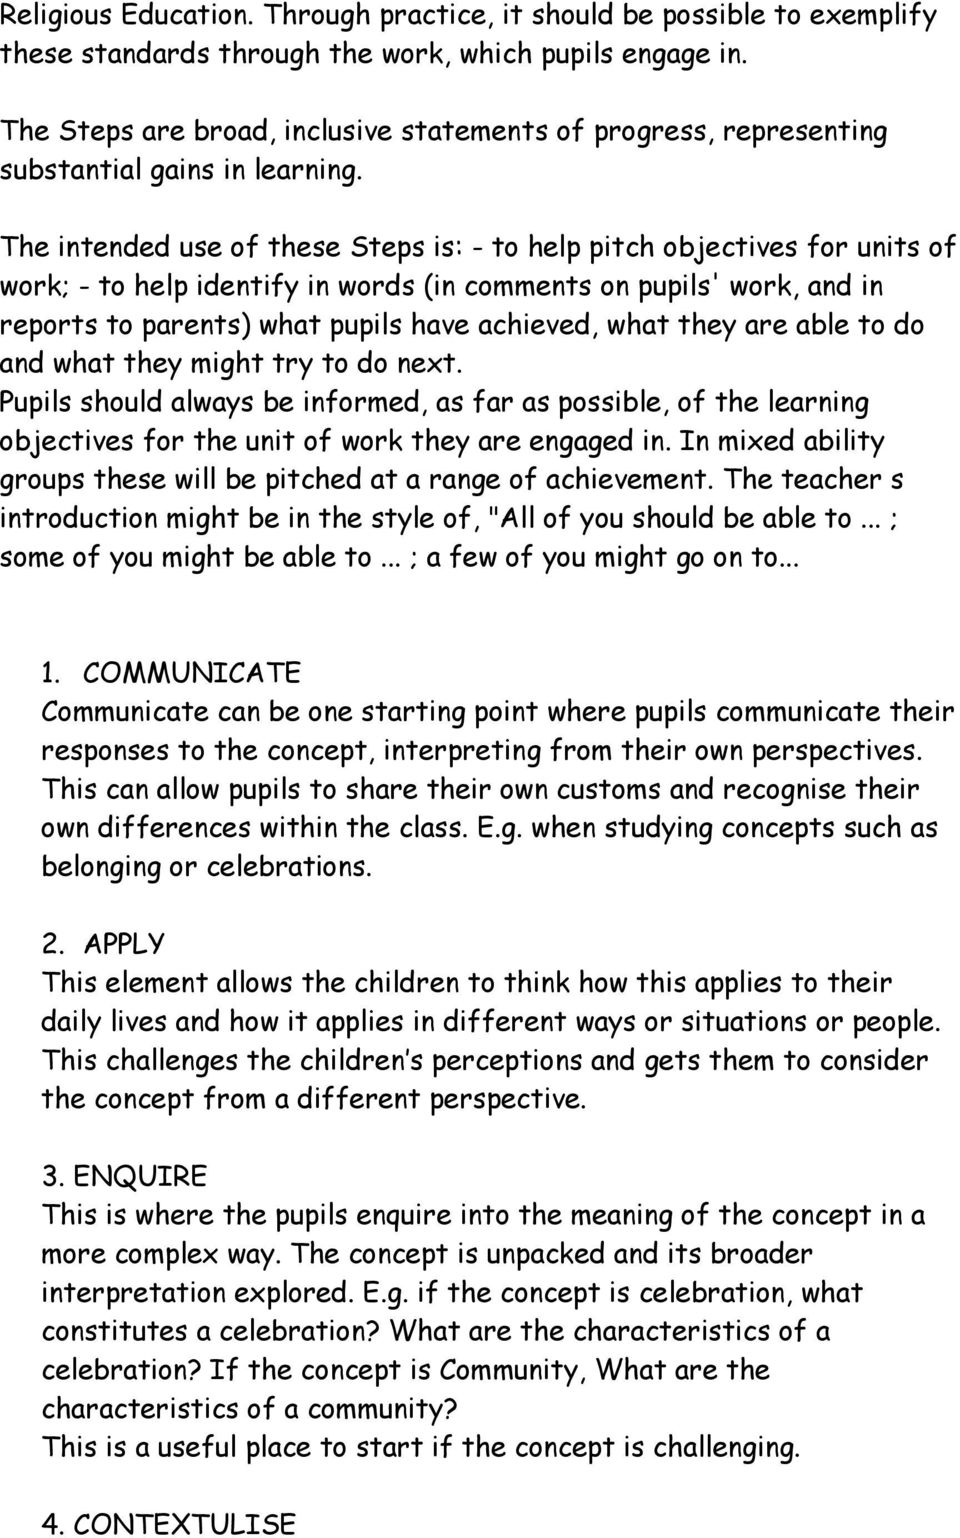 The intended use of these Steps is: - to help pitch objectives for units of work; - to help identify in words (in comments on pupils' work, and in reports to parents) what pupils have achieved, what